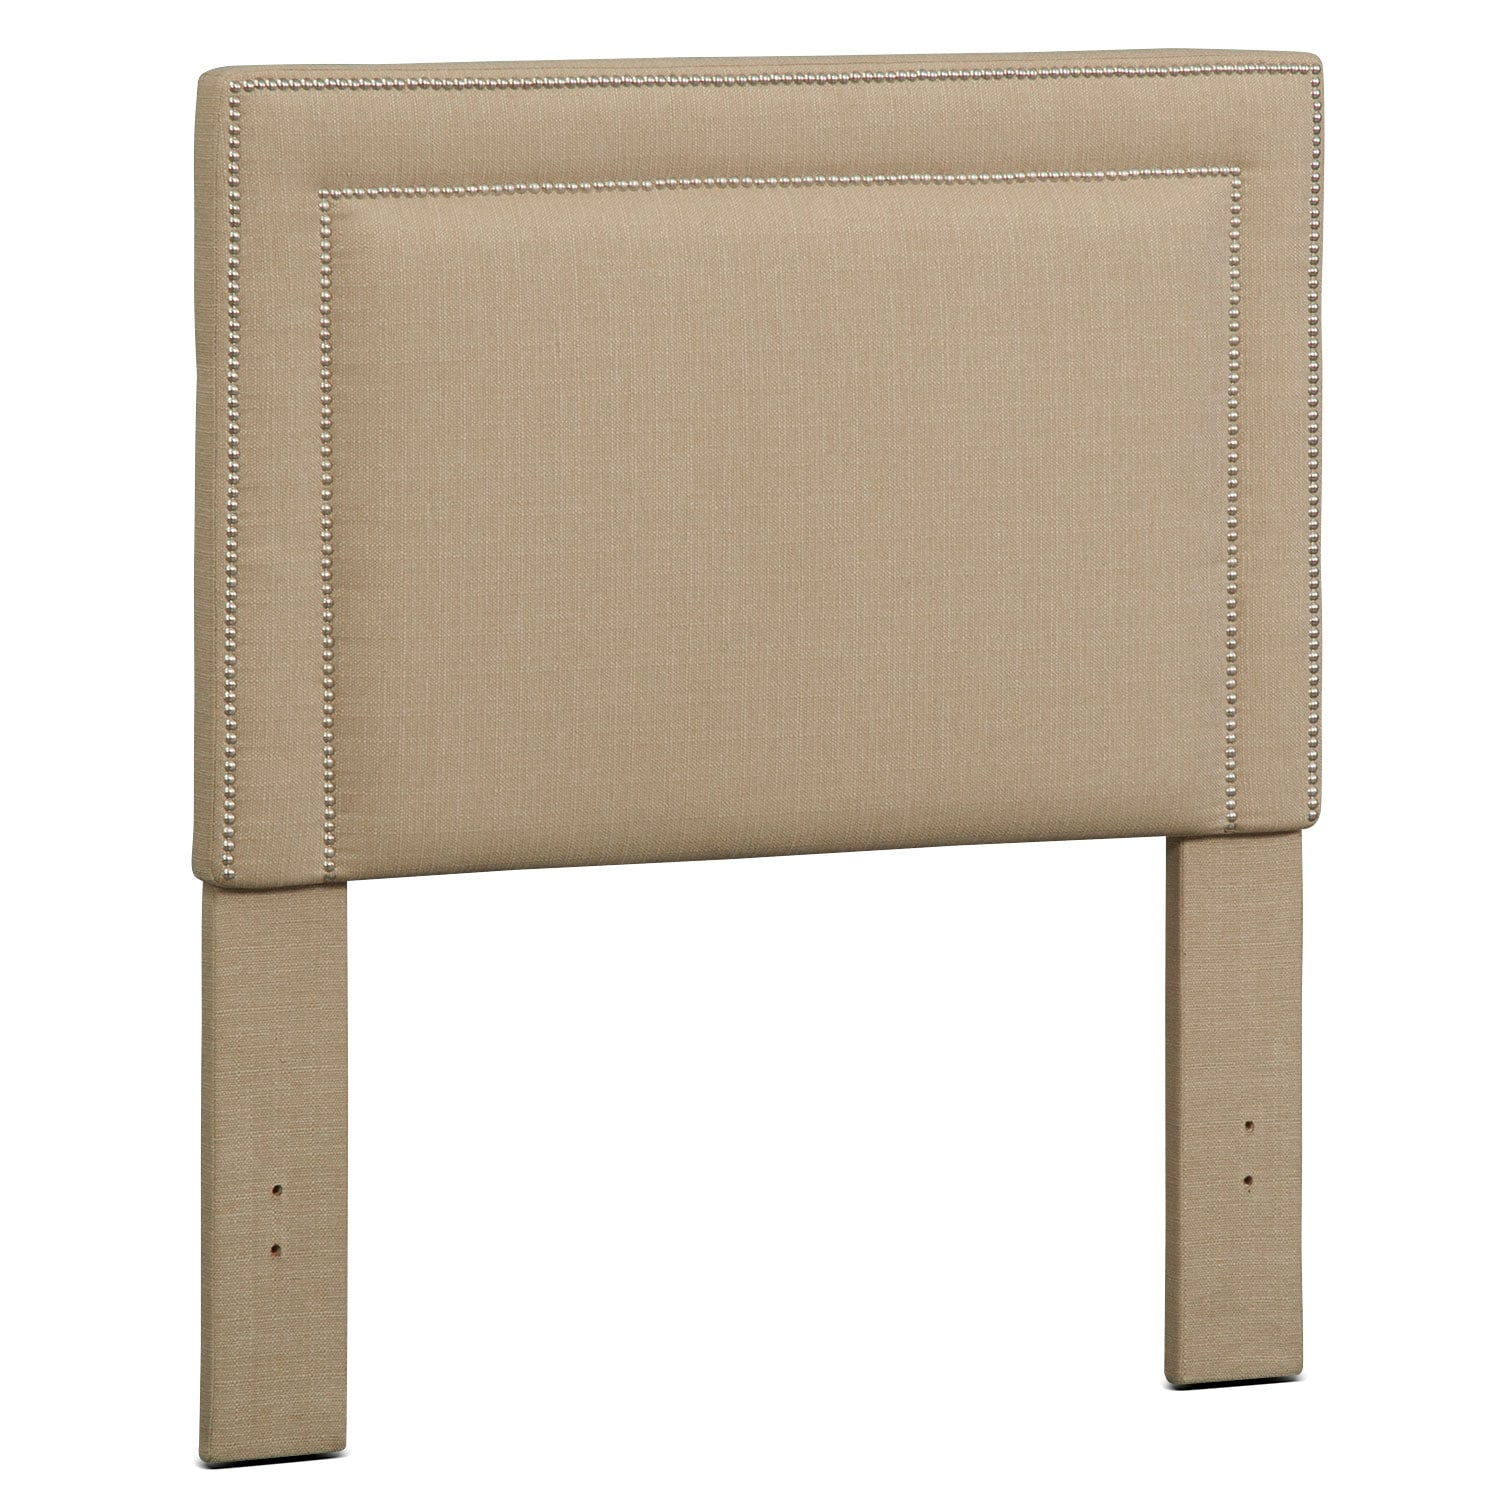 Natalie Full Upholstered Headboard - Tan